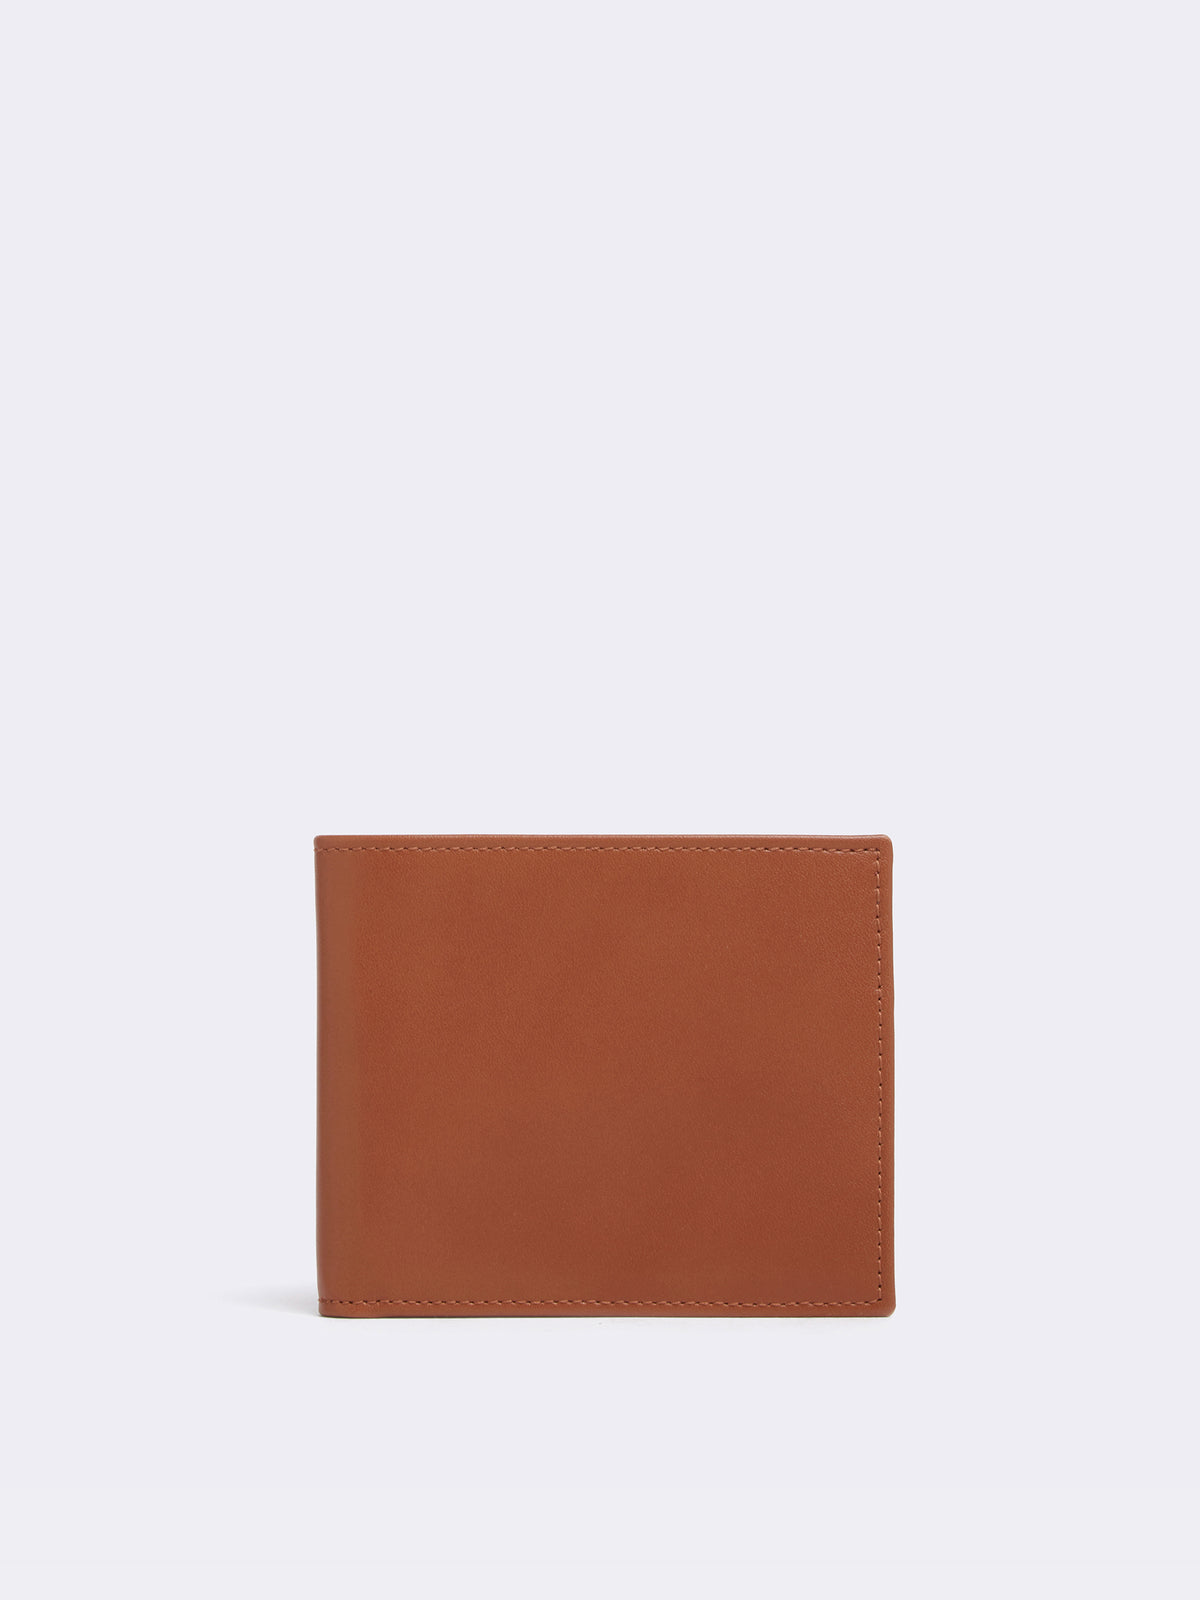 Mark Cross Bi-Fold Leather Wallet Smooth Calf Tan Front